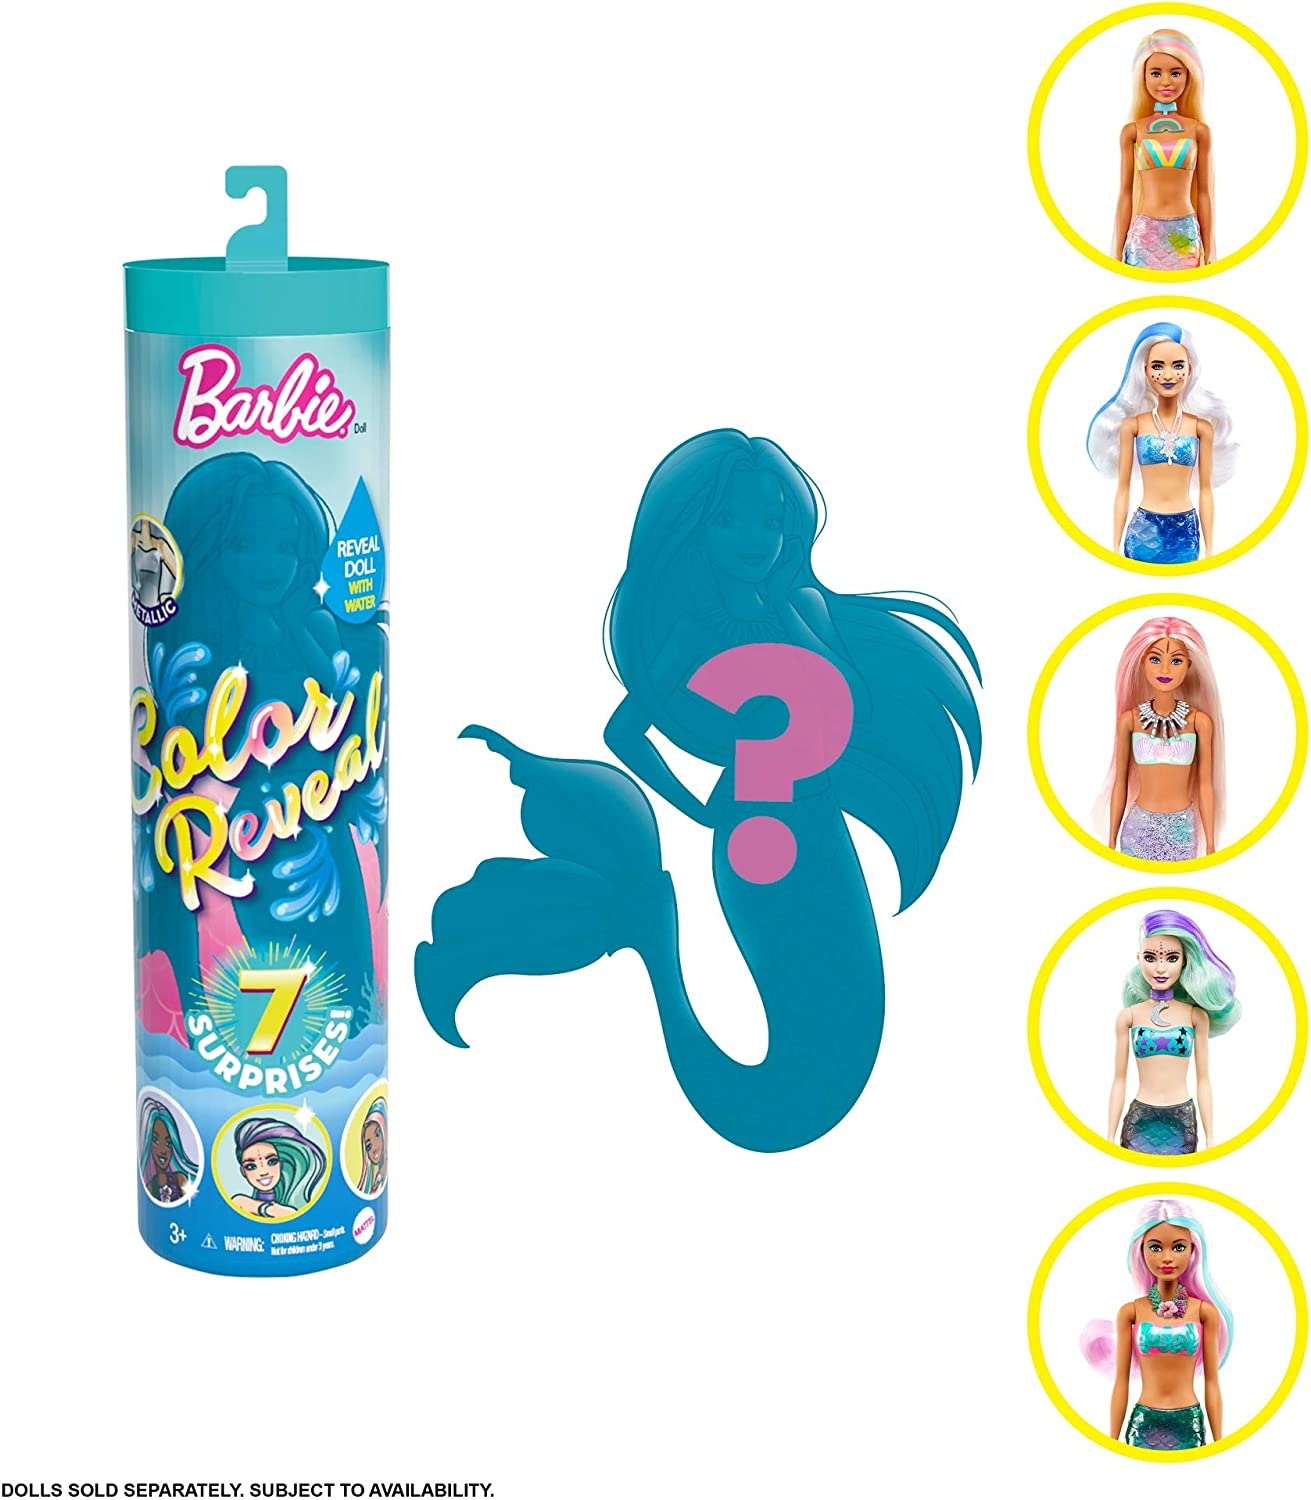 NEW Barbie Colour Reveal Doll Assortment £19.99 @ Amazon